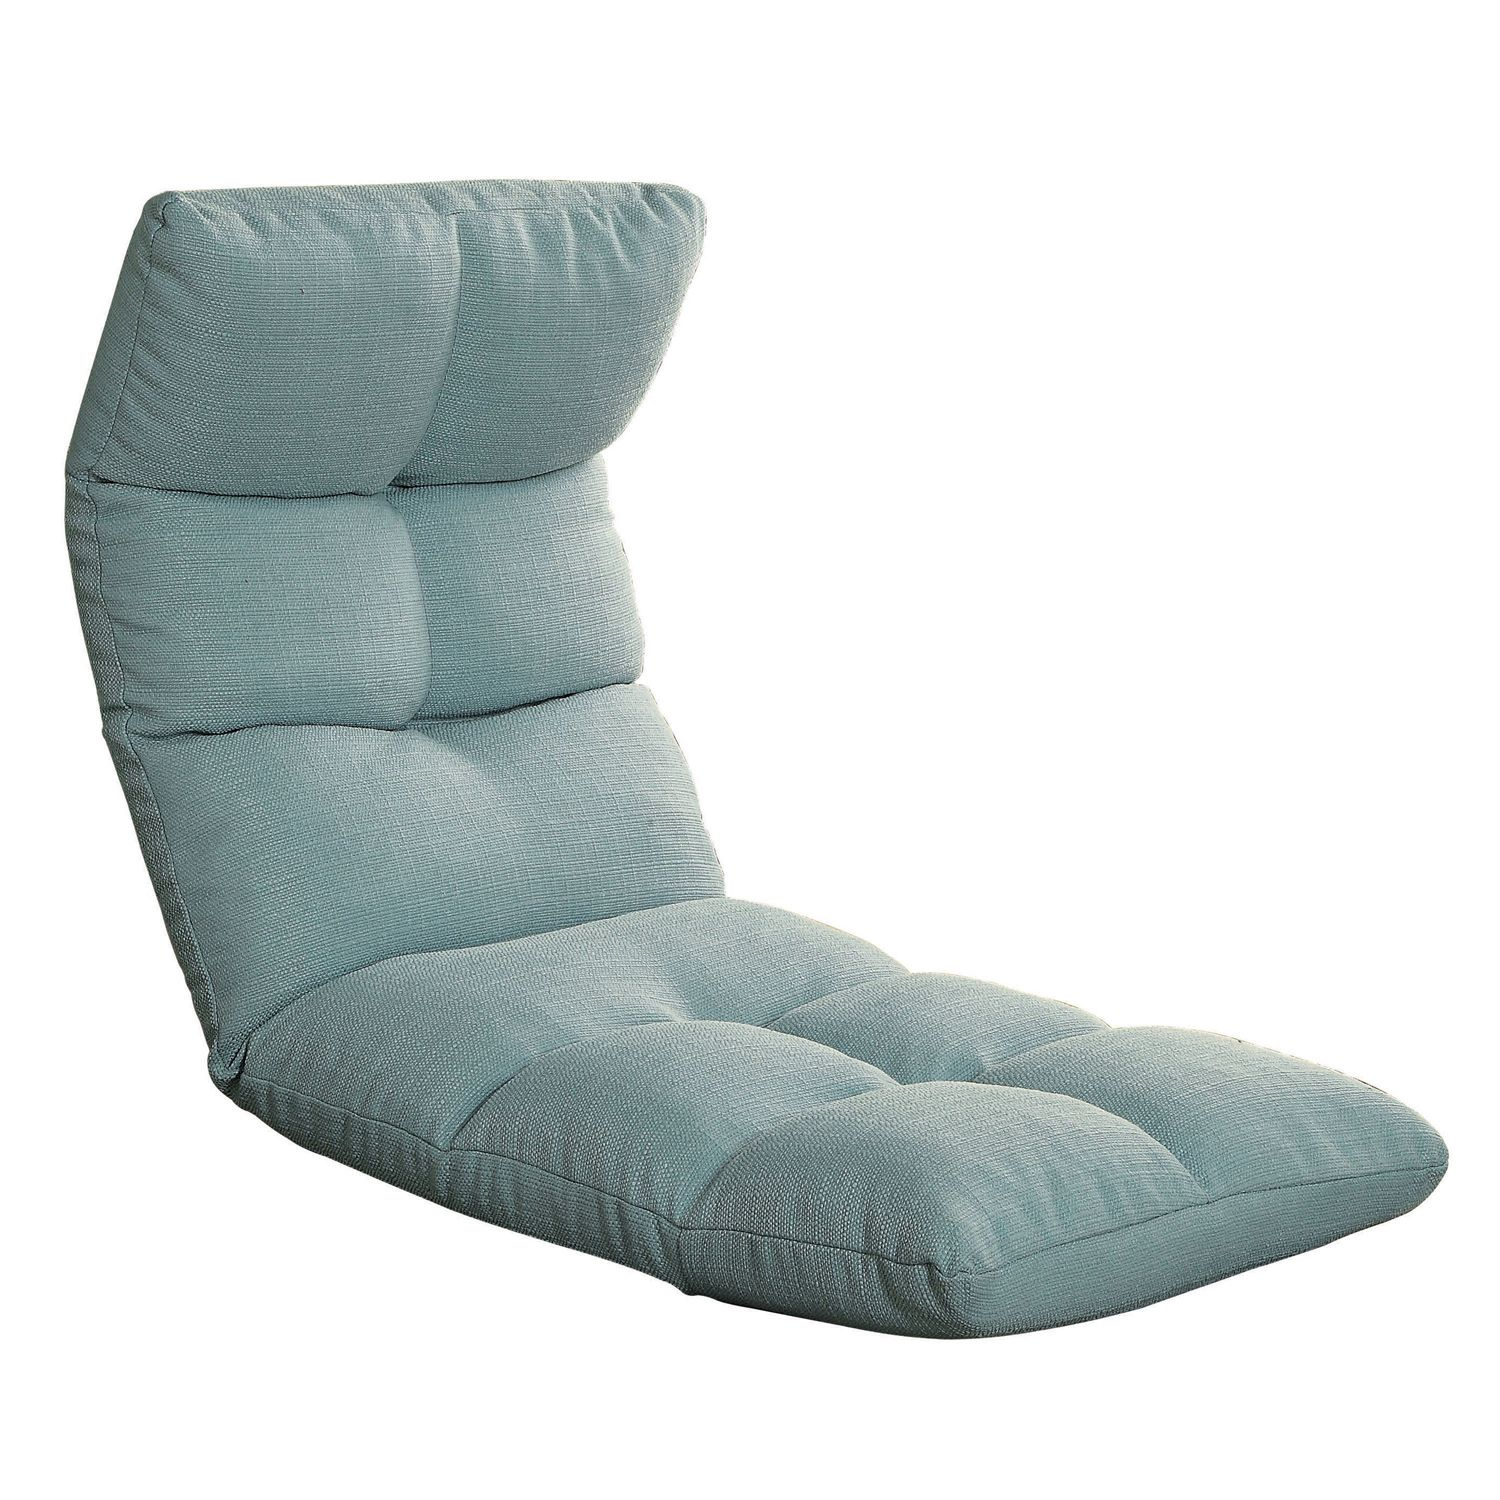 Teal game chair teal gaming and products